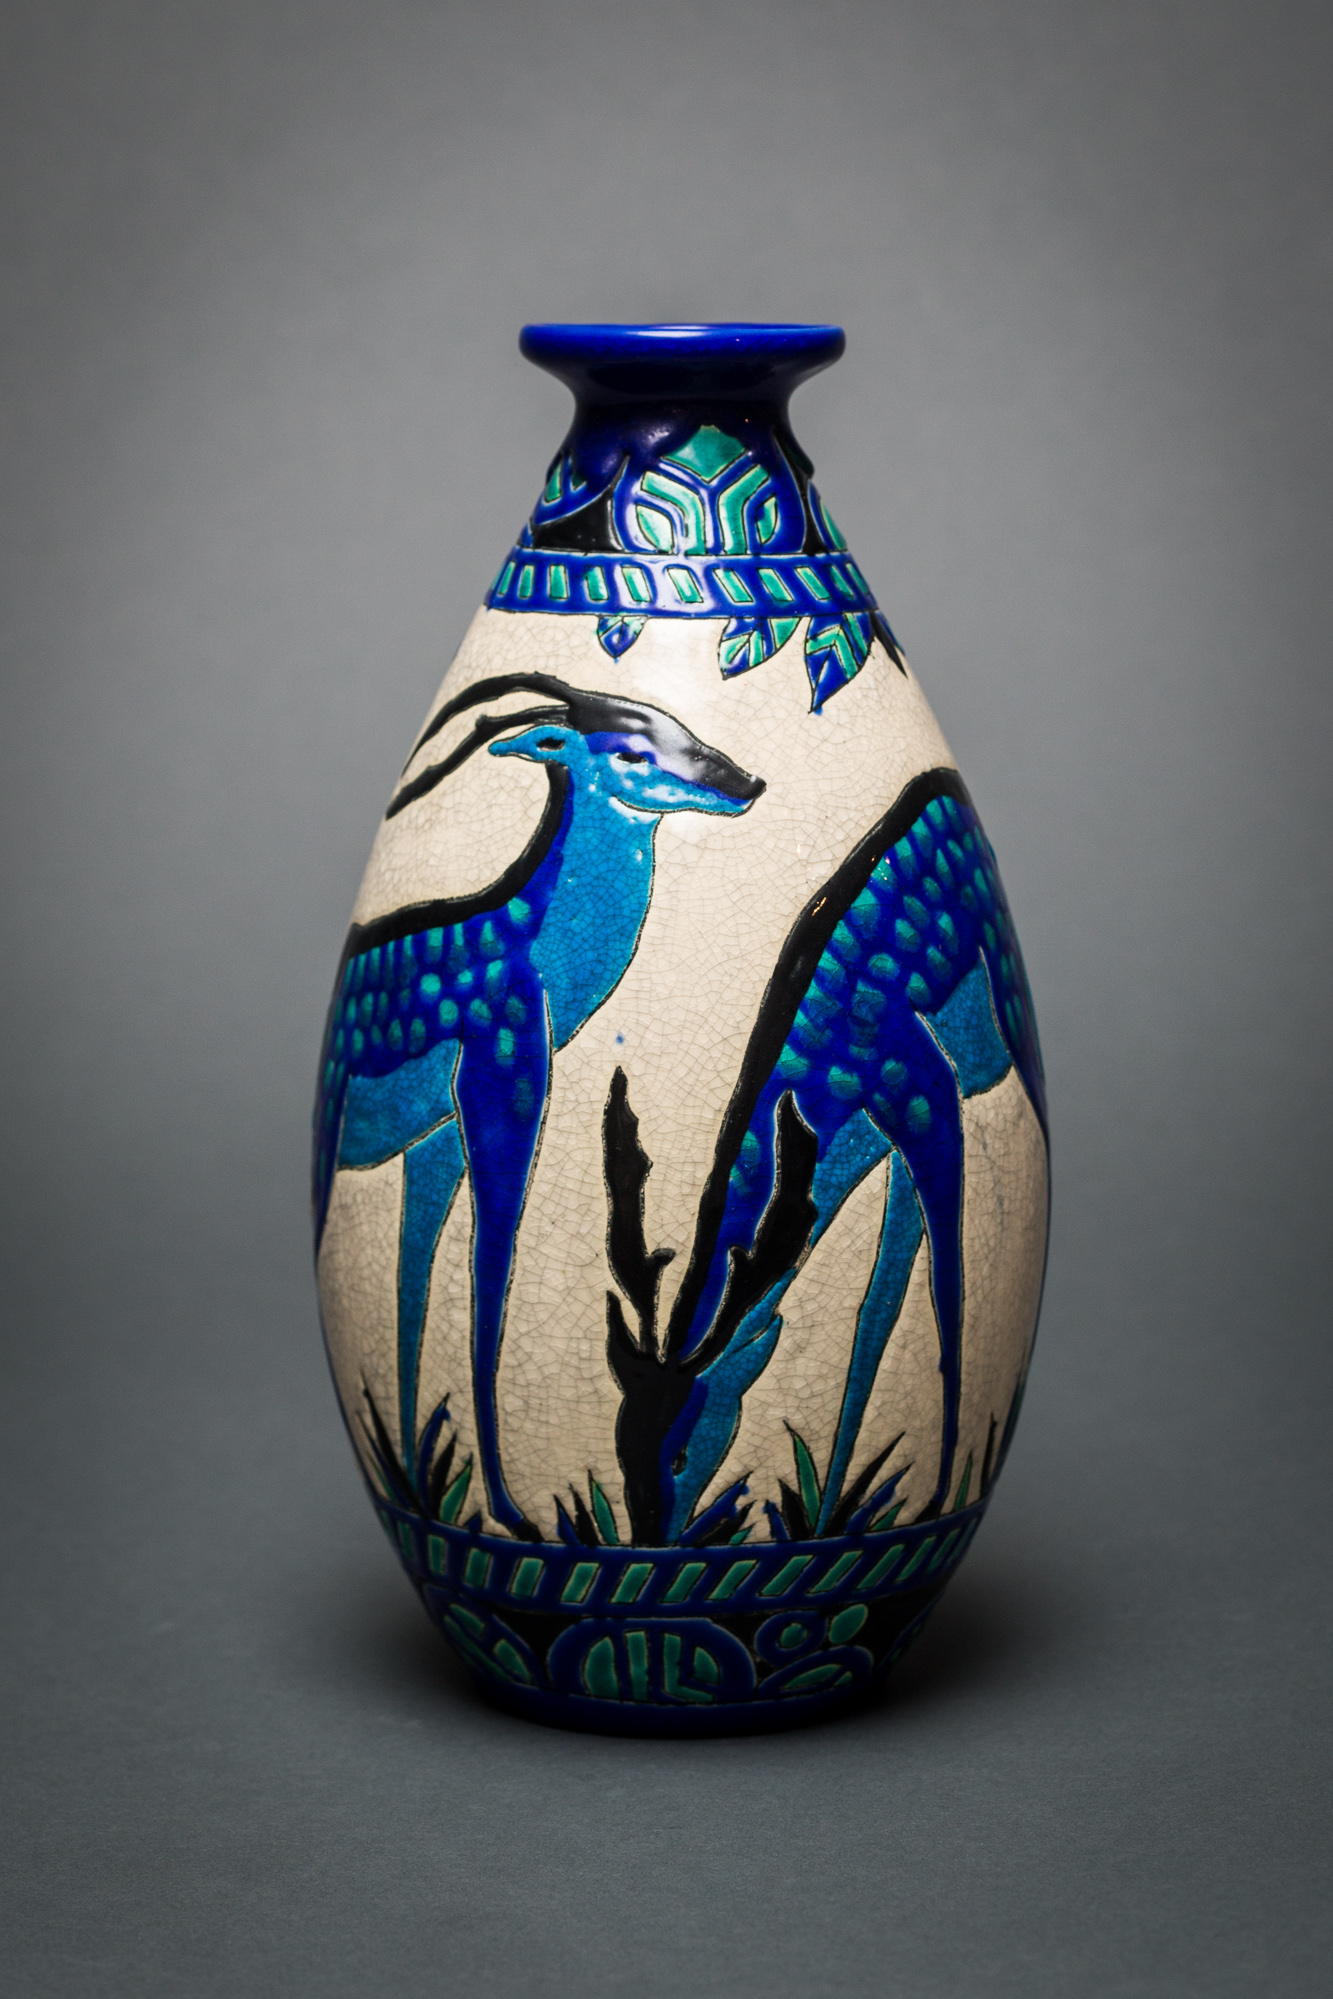 Single Vase with Deer, Designed by Charles Catteau at Boch Frères Keramis